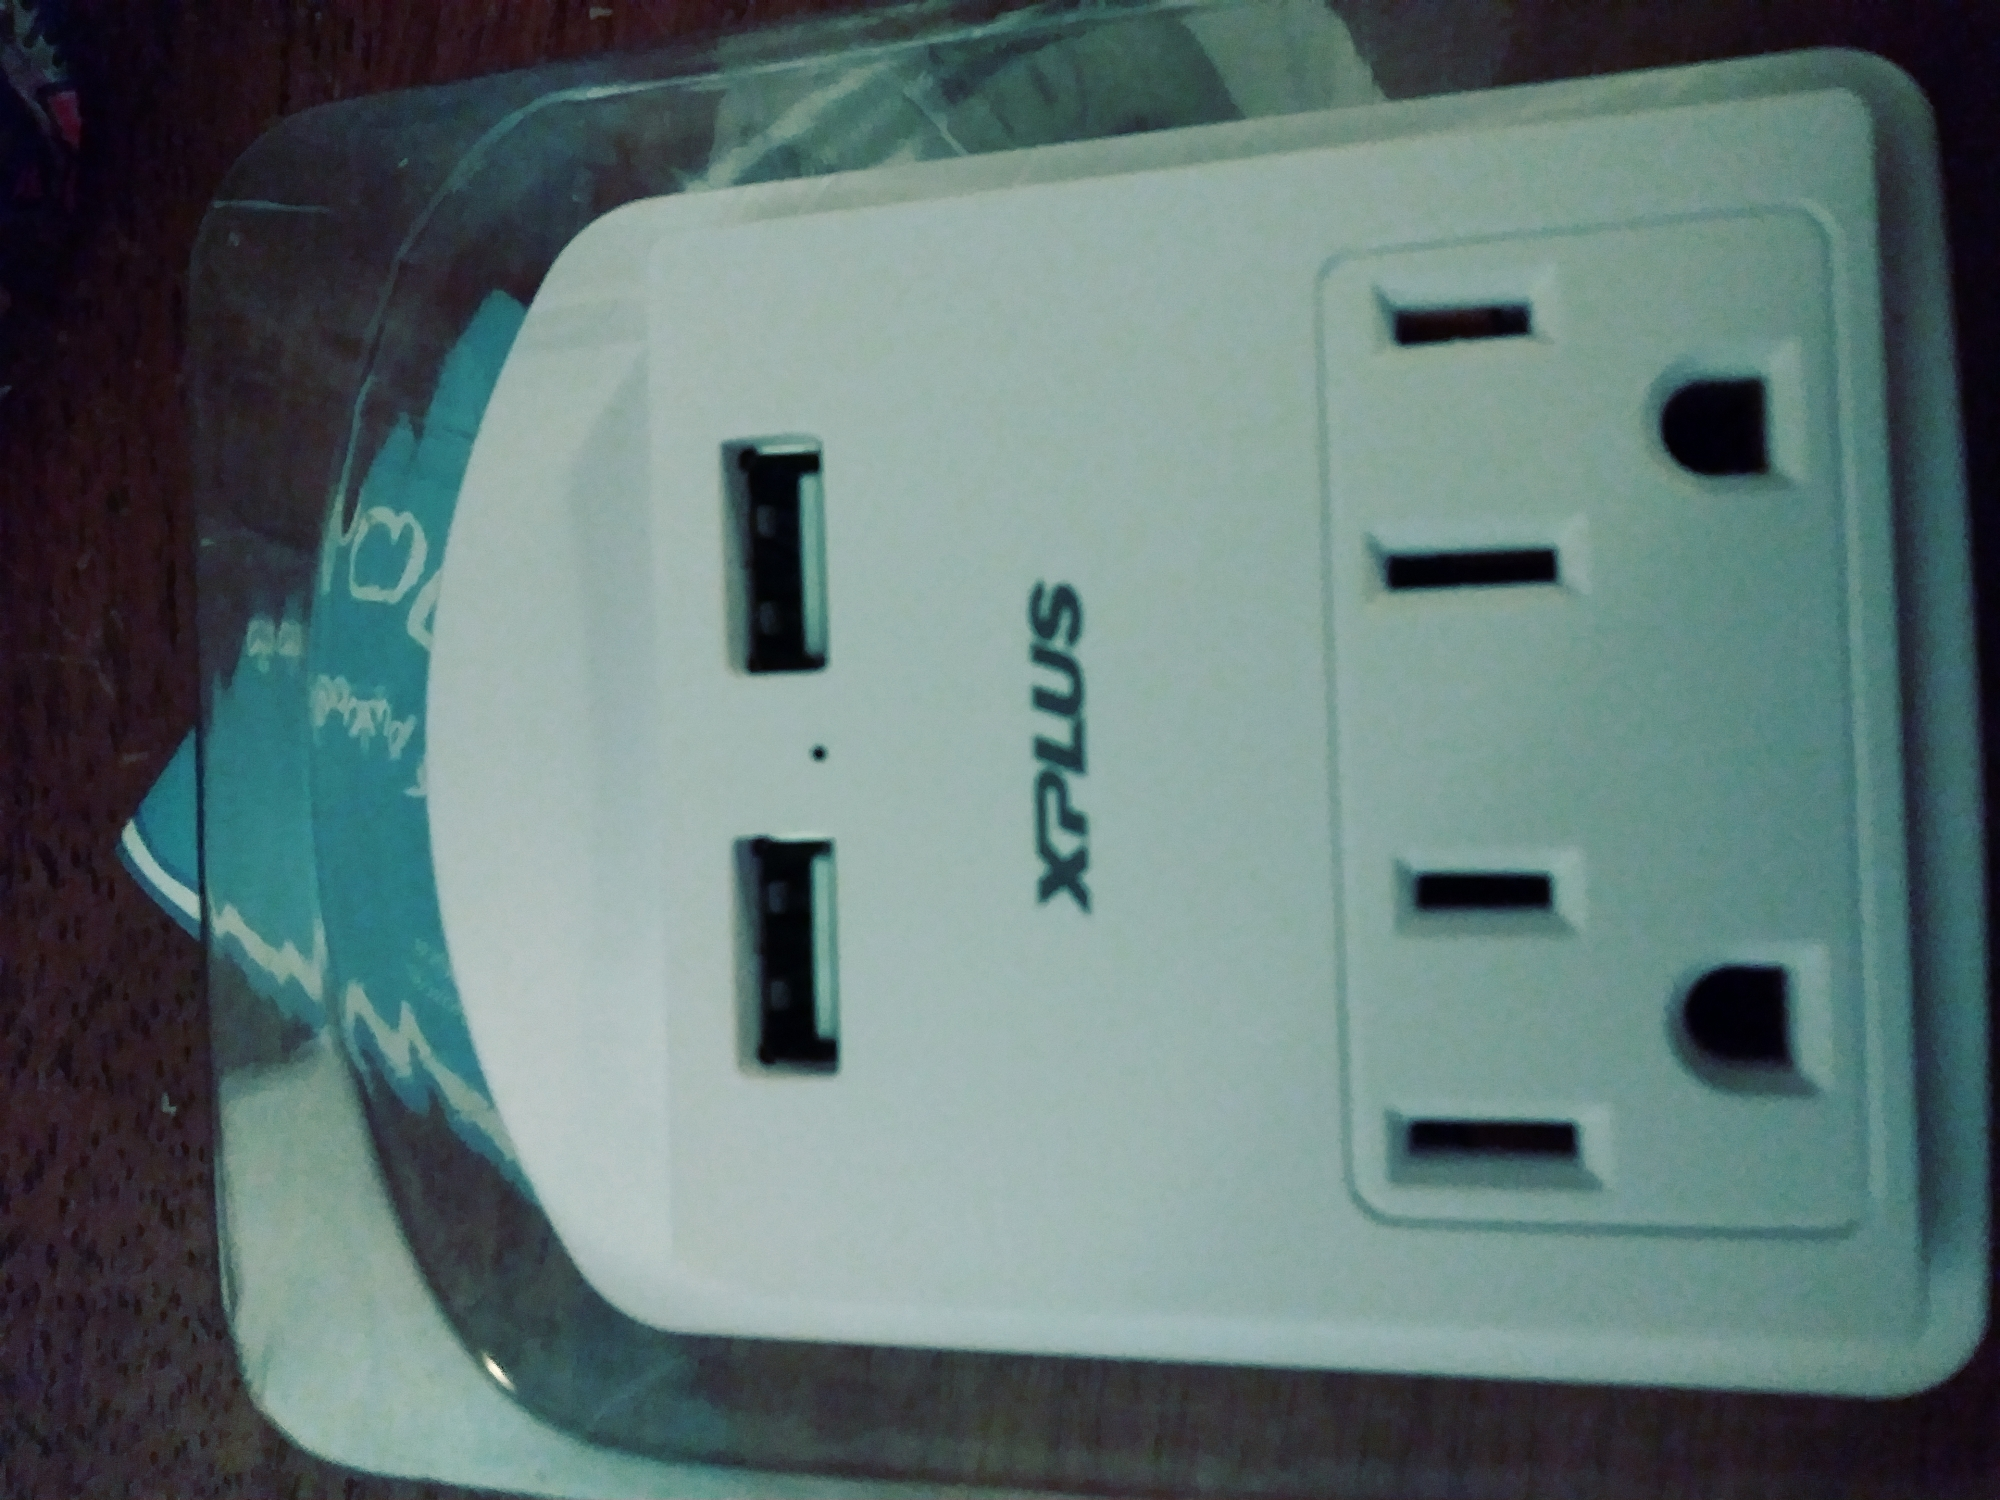 Awesome USB Wall Outlet,XPLUS 2 USB Charging Ports